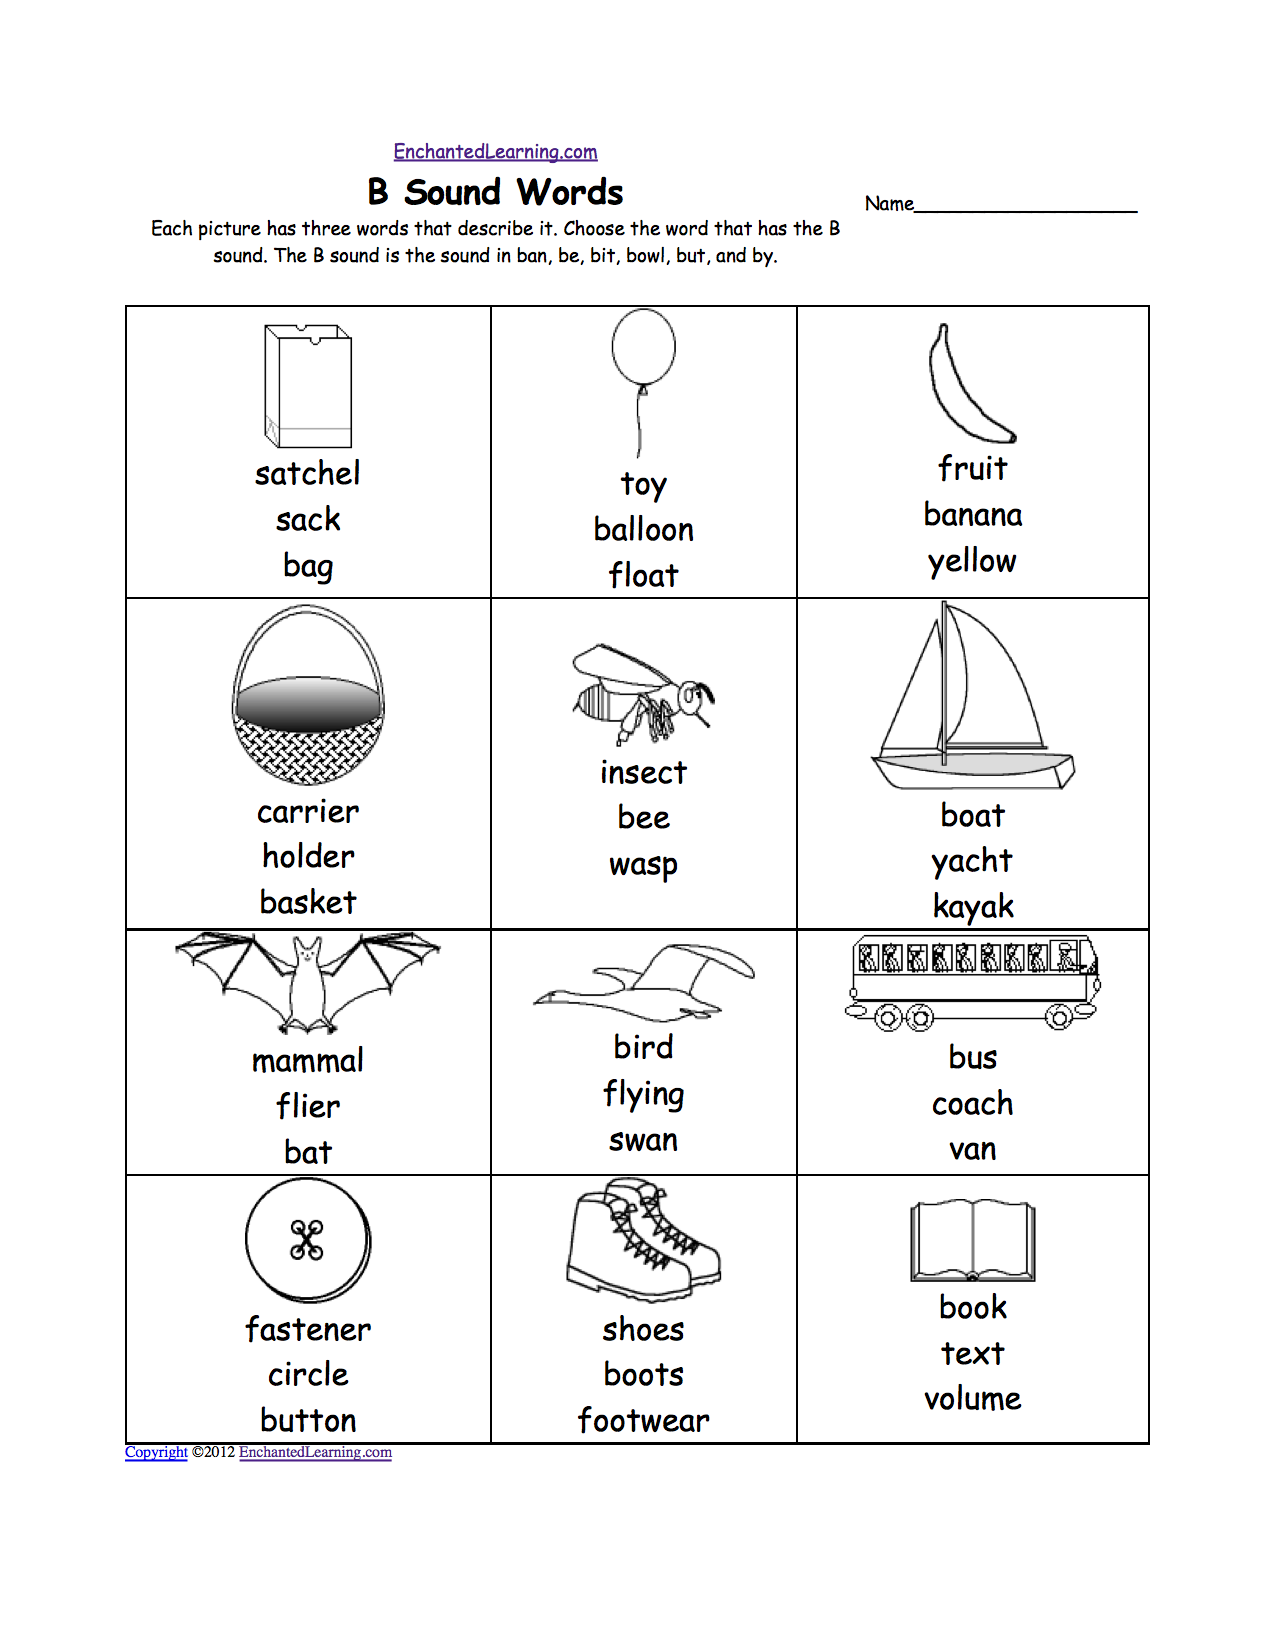 Proatmealus  Pleasant Phonics Worksheets Multiple Choice Worksheets To Print  With Lovely Quotbquot Sound Phonics Worksheet Multiple Choice Each Picture Has Three Words That Describe It Choose The Word That Has A Quotbquot Sound The Quotbquot Sound Is The Sound  With Breathtaking Pathos Logos Ethos Worksheet Also Air Pressure Worksheets In Addition Lay Lie Worksheet And Miller Levine Biology Worksheets As Well As Easy Slope Worksheets Additionally Past Tense Verbs Worksheets Nd Grade From Enchantedlearningcom With Proatmealus  Lovely Phonics Worksheets Multiple Choice Worksheets To Print  With Breathtaking Quotbquot Sound Phonics Worksheet Multiple Choice Each Picture Has Three Words That Describe It Choose The Word That Has A Quotbquot Sound The Quotbquot Sound Is The Sound  And Pleasant Pathos Logos Ethos Worksheet Also Air Pressure Worksheets In Addition Lay Lie Worksheet From Enchantedlearningcom